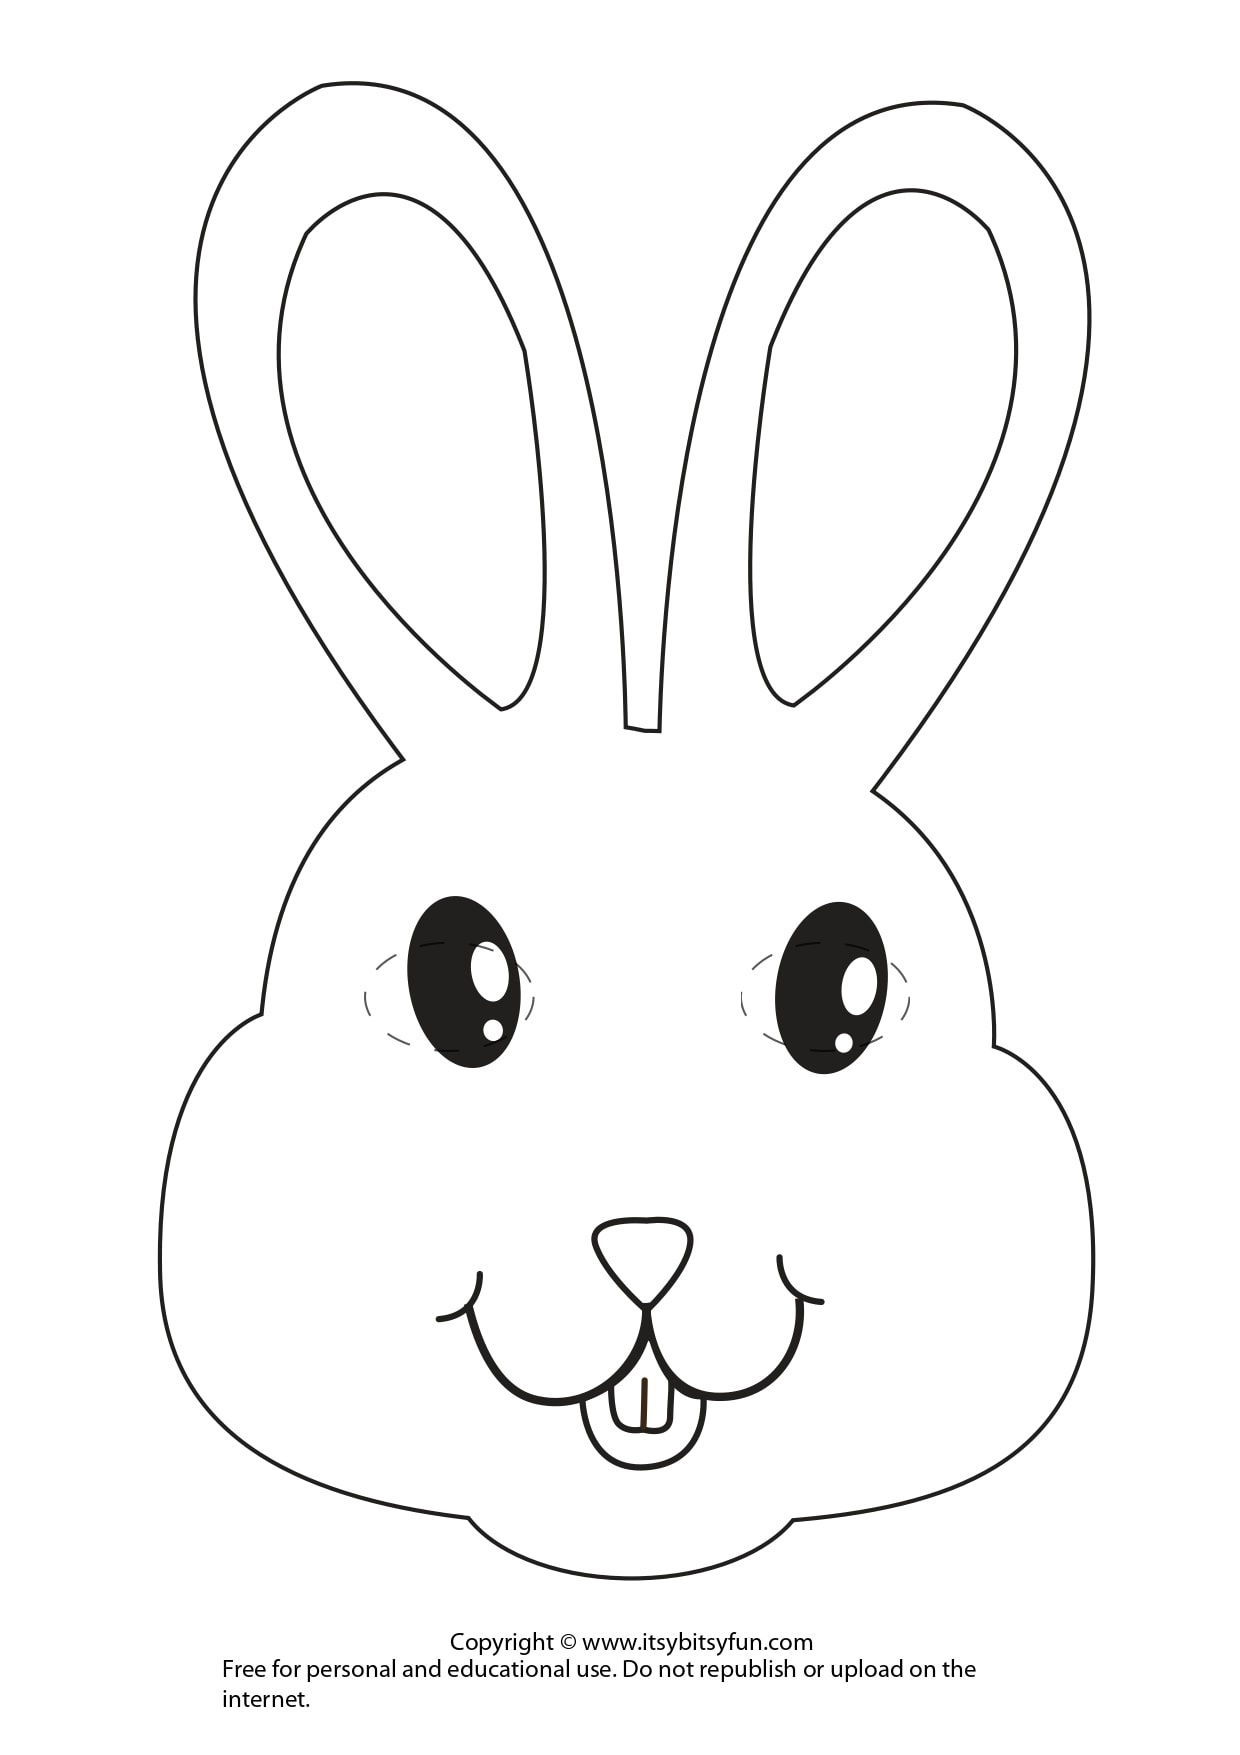 Easter Masks - Bunny Rabbit And Chick Template - Itsy Bitsy Fun - Free Printable Easter Masks